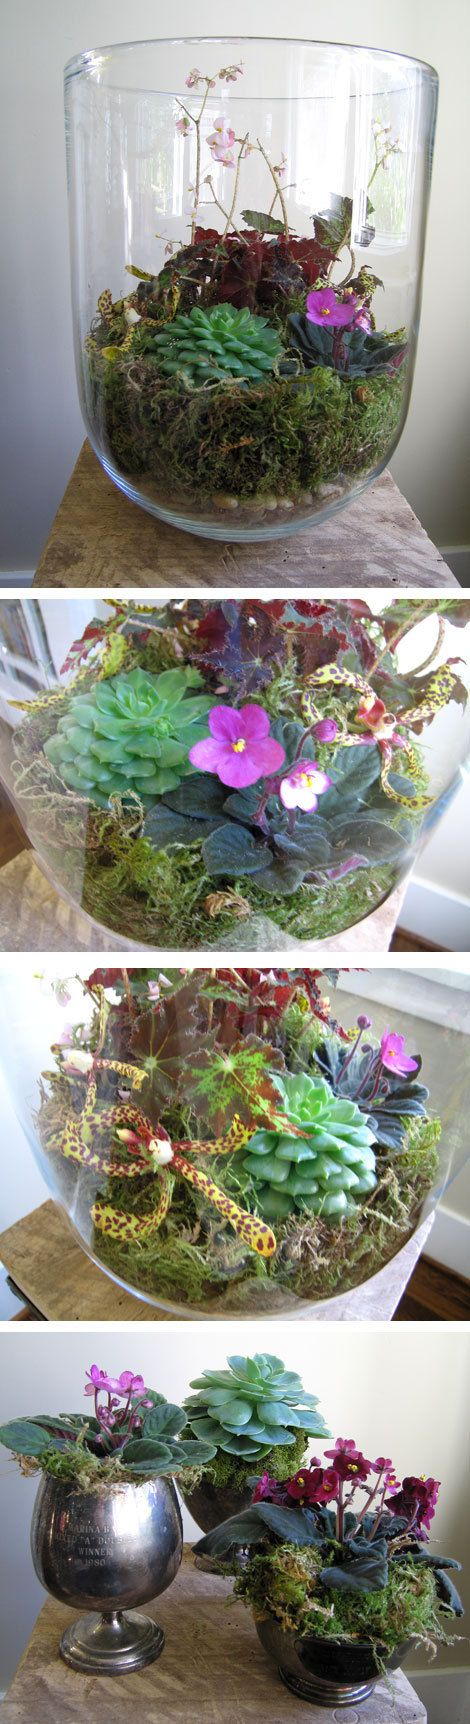 terrariums: by ink & peat